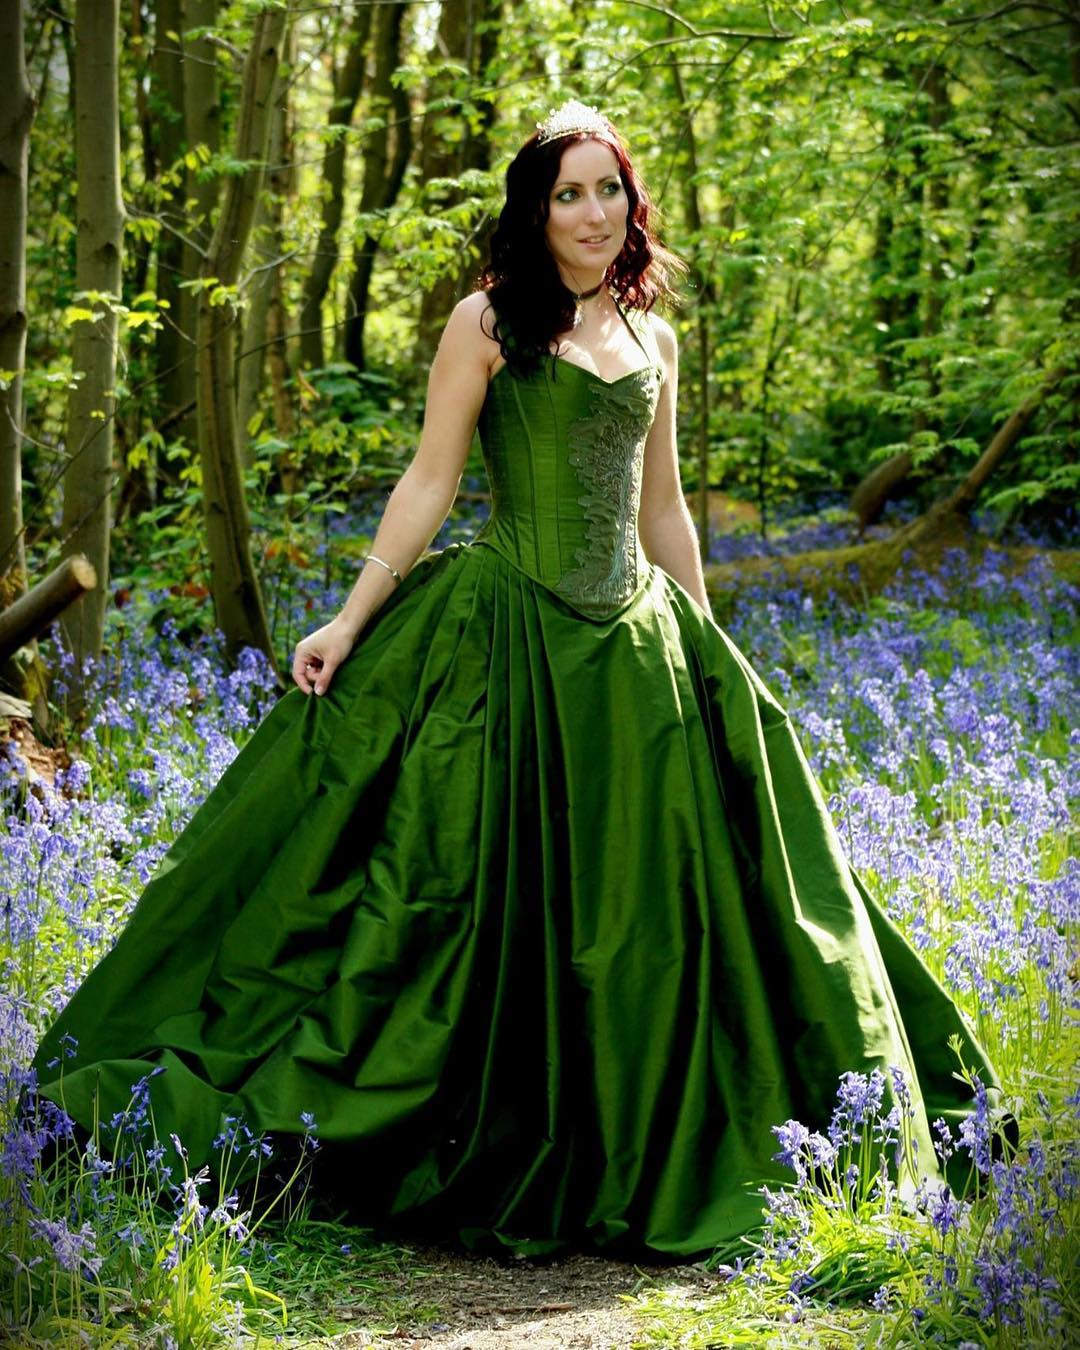 26beautiful fantasy wedding dresses design trends premium psd green wedding dress junglespirit Image collections